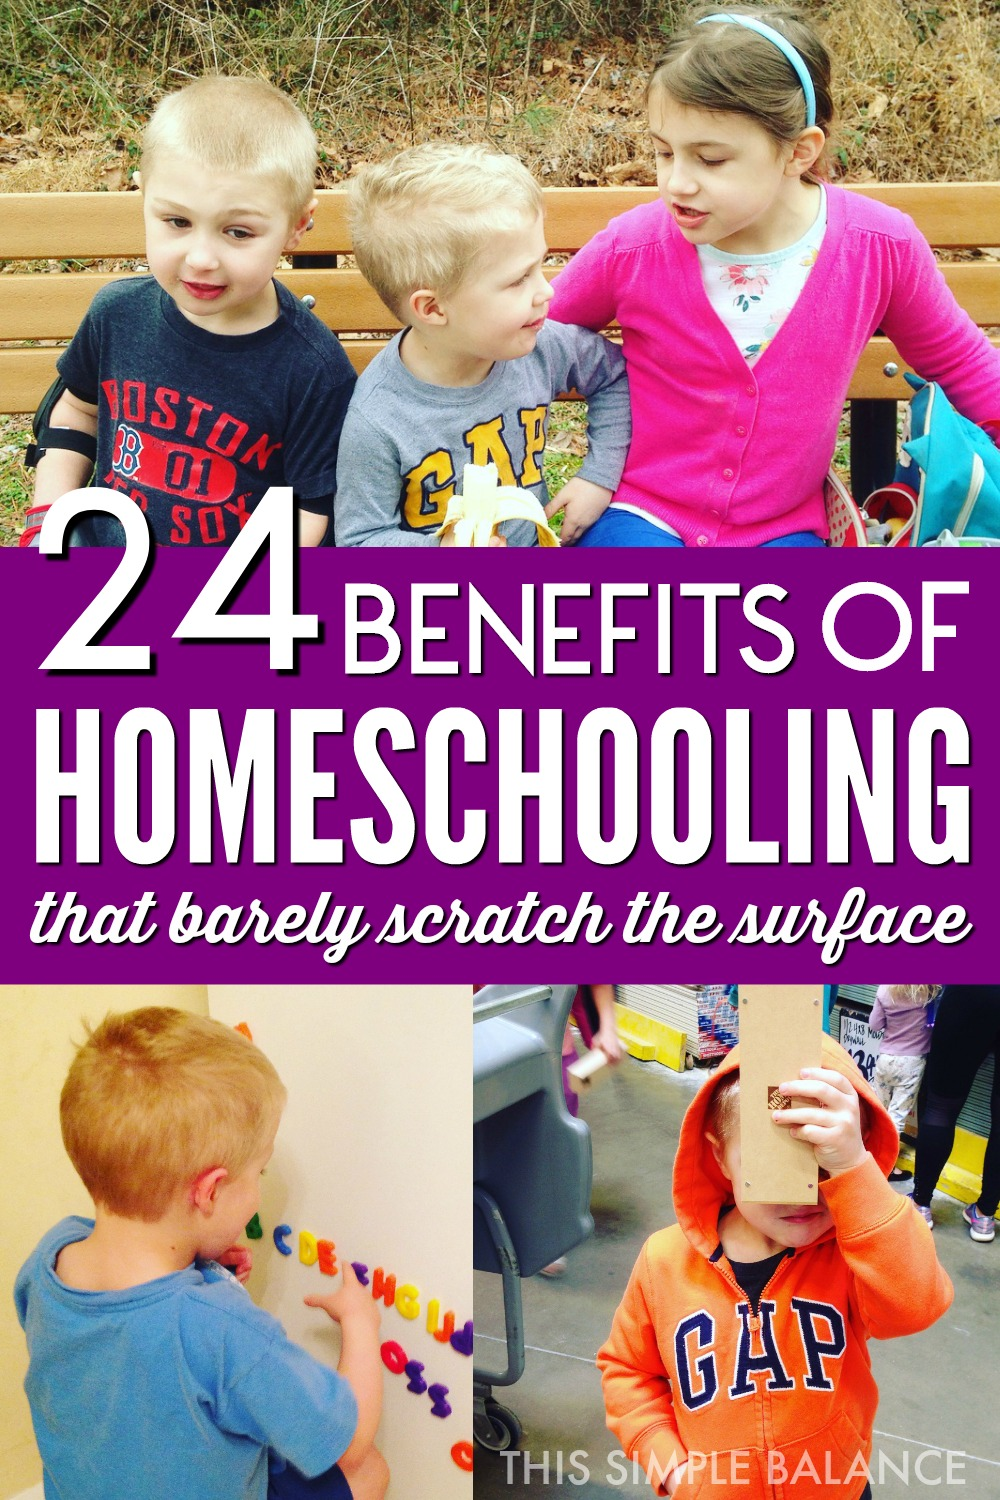 Homeschooling has so many benefits, but it's easy to forget them in the day to day life of the homeschool mom. I read these every time I need a reminder of why I homeschool. #whyhomeschool #homeschoolmom